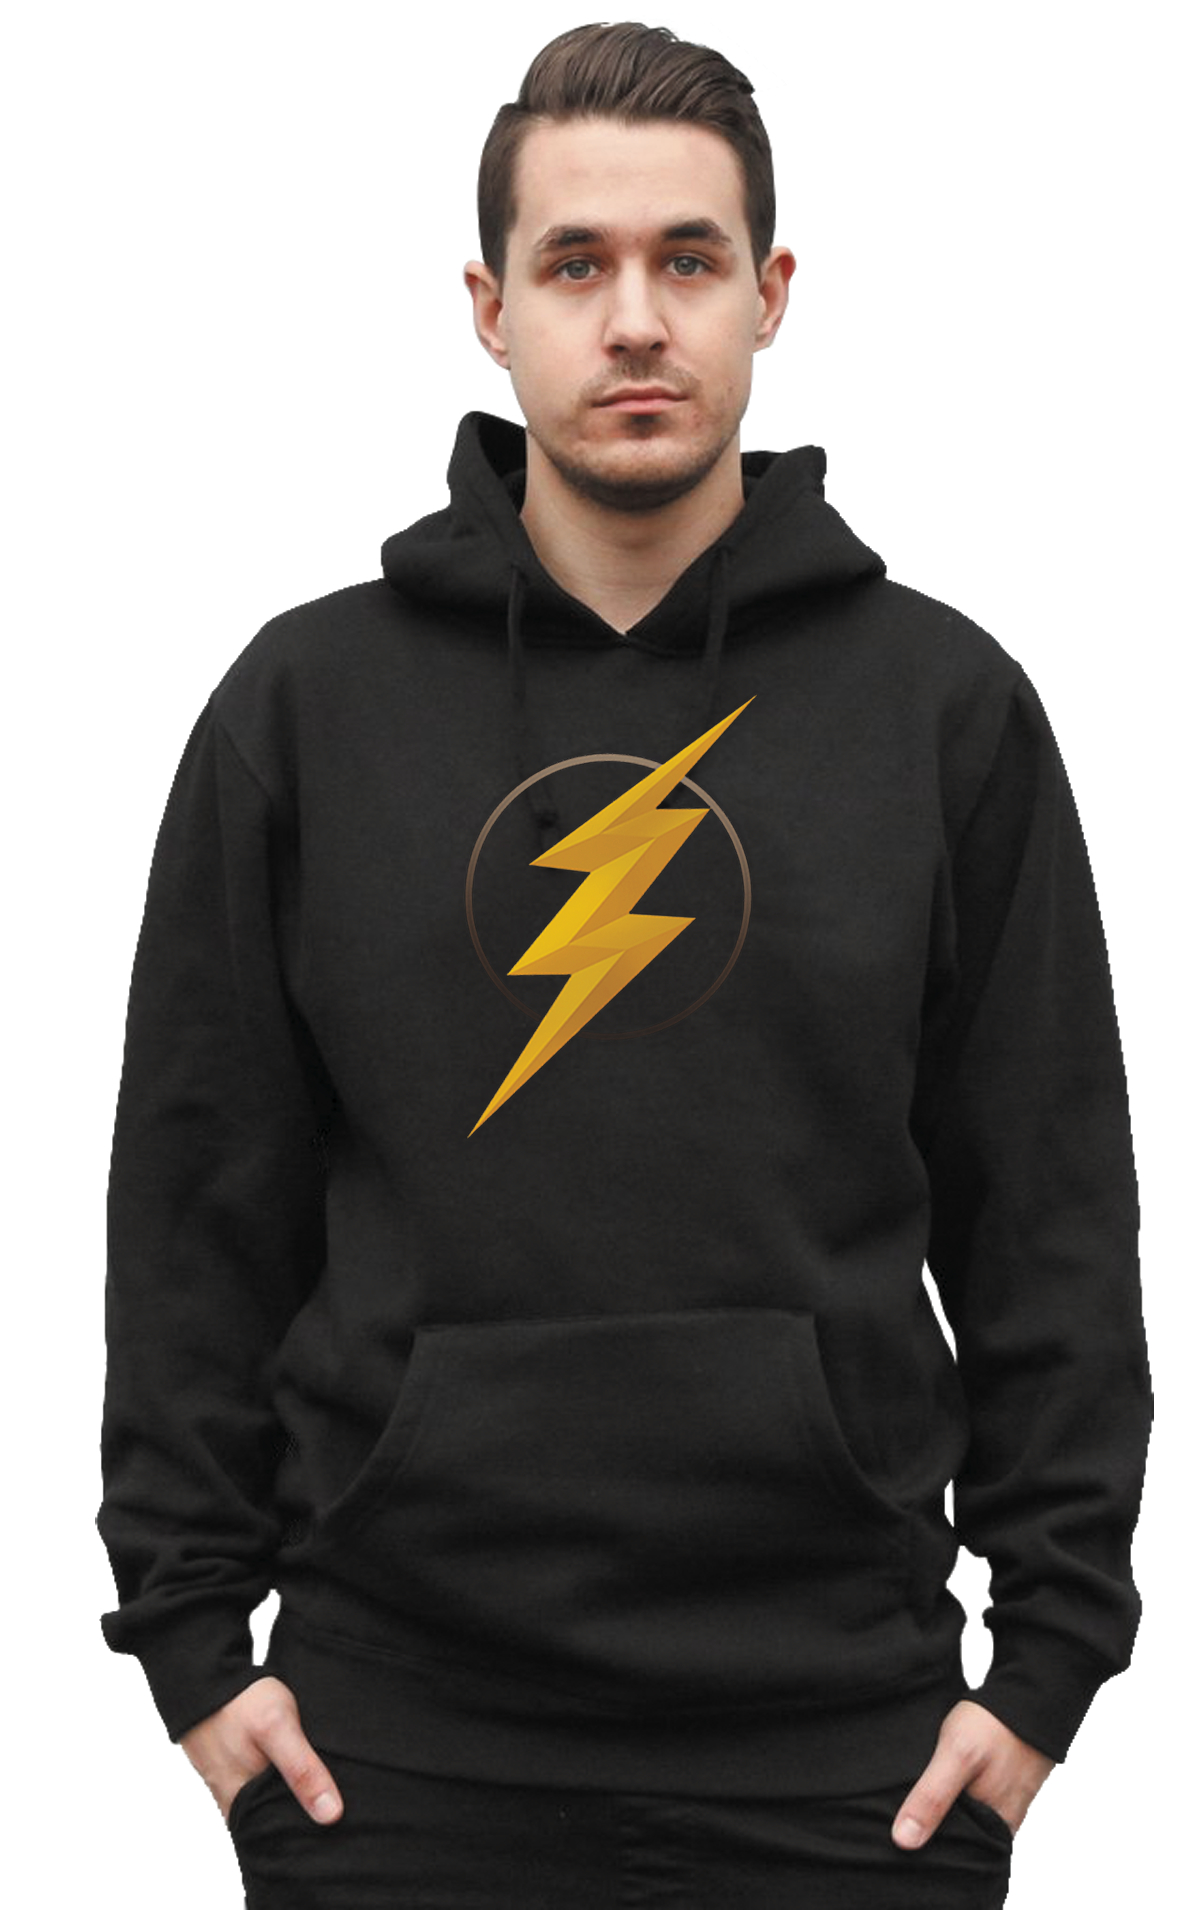 JUSTICE LEAGUE FLASH SYMBOL II HOODIE XL